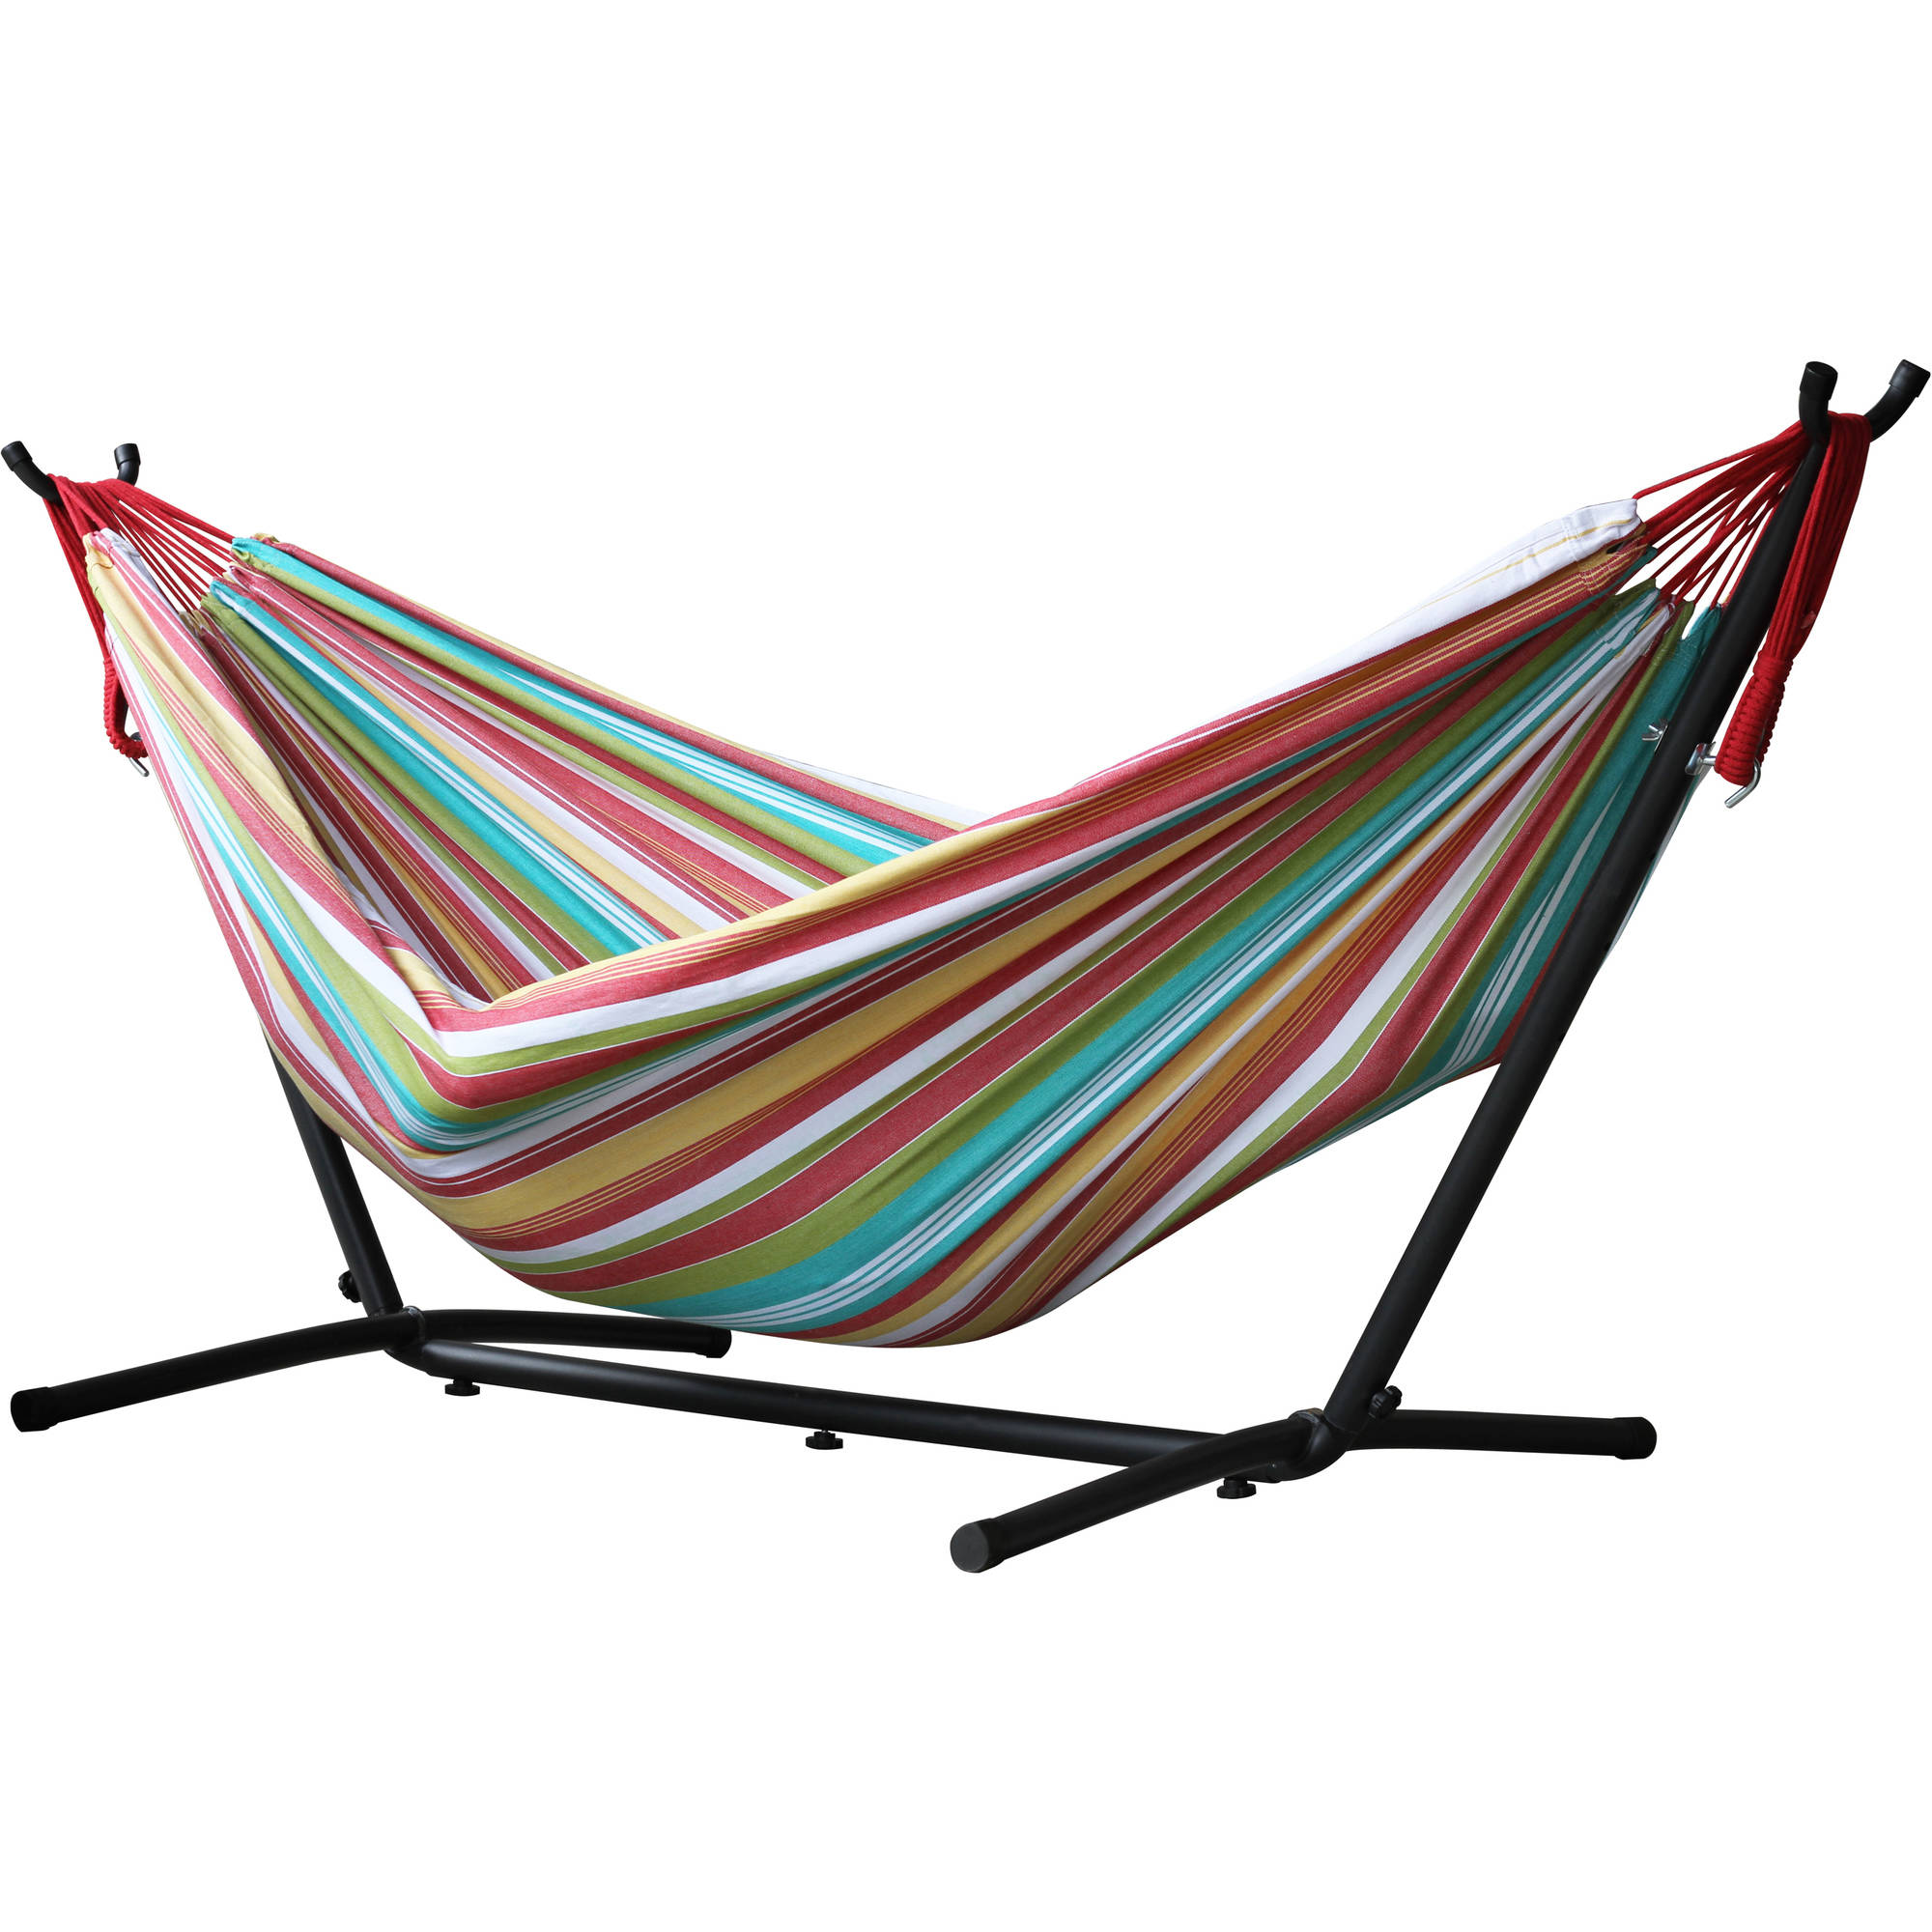 Vivere's Combo Double Hammock with Stand, Salsa, 9' by Vivere